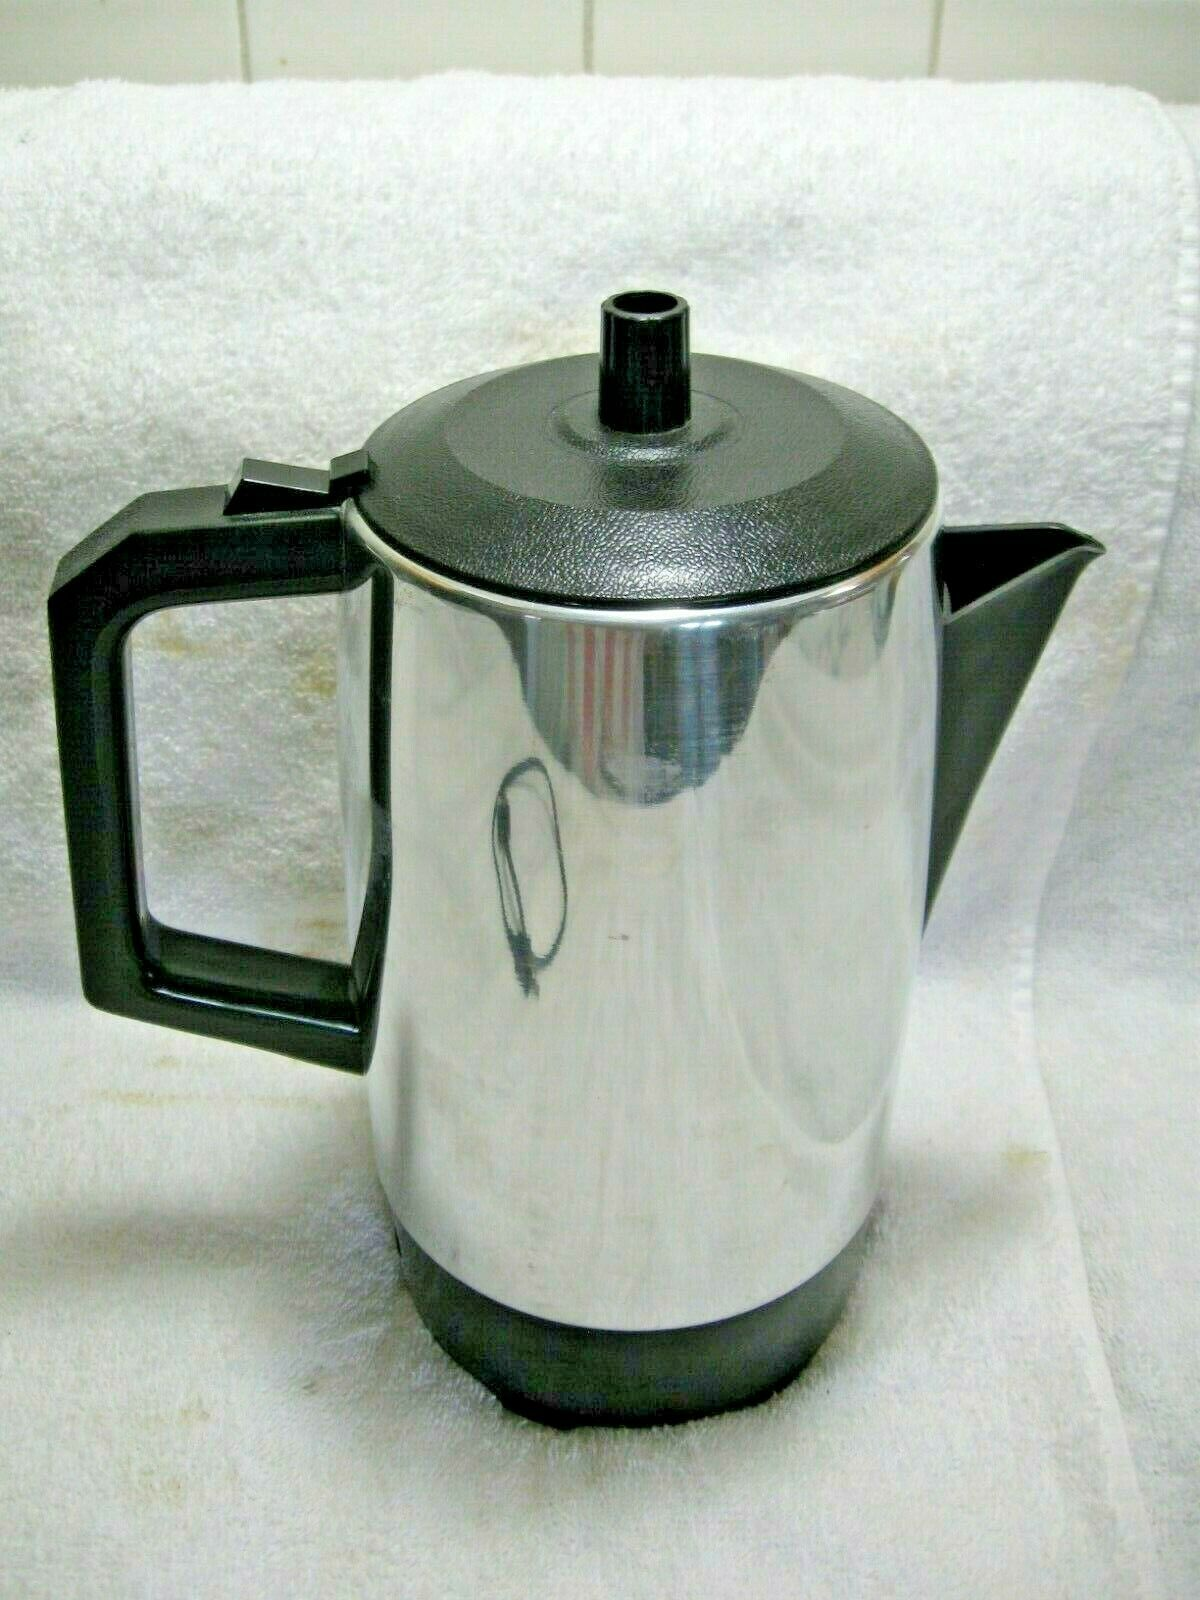 Vintage Collectible WEST BEND 5-9 Cup Electric Percolator Coffee Maker-Diner!!!